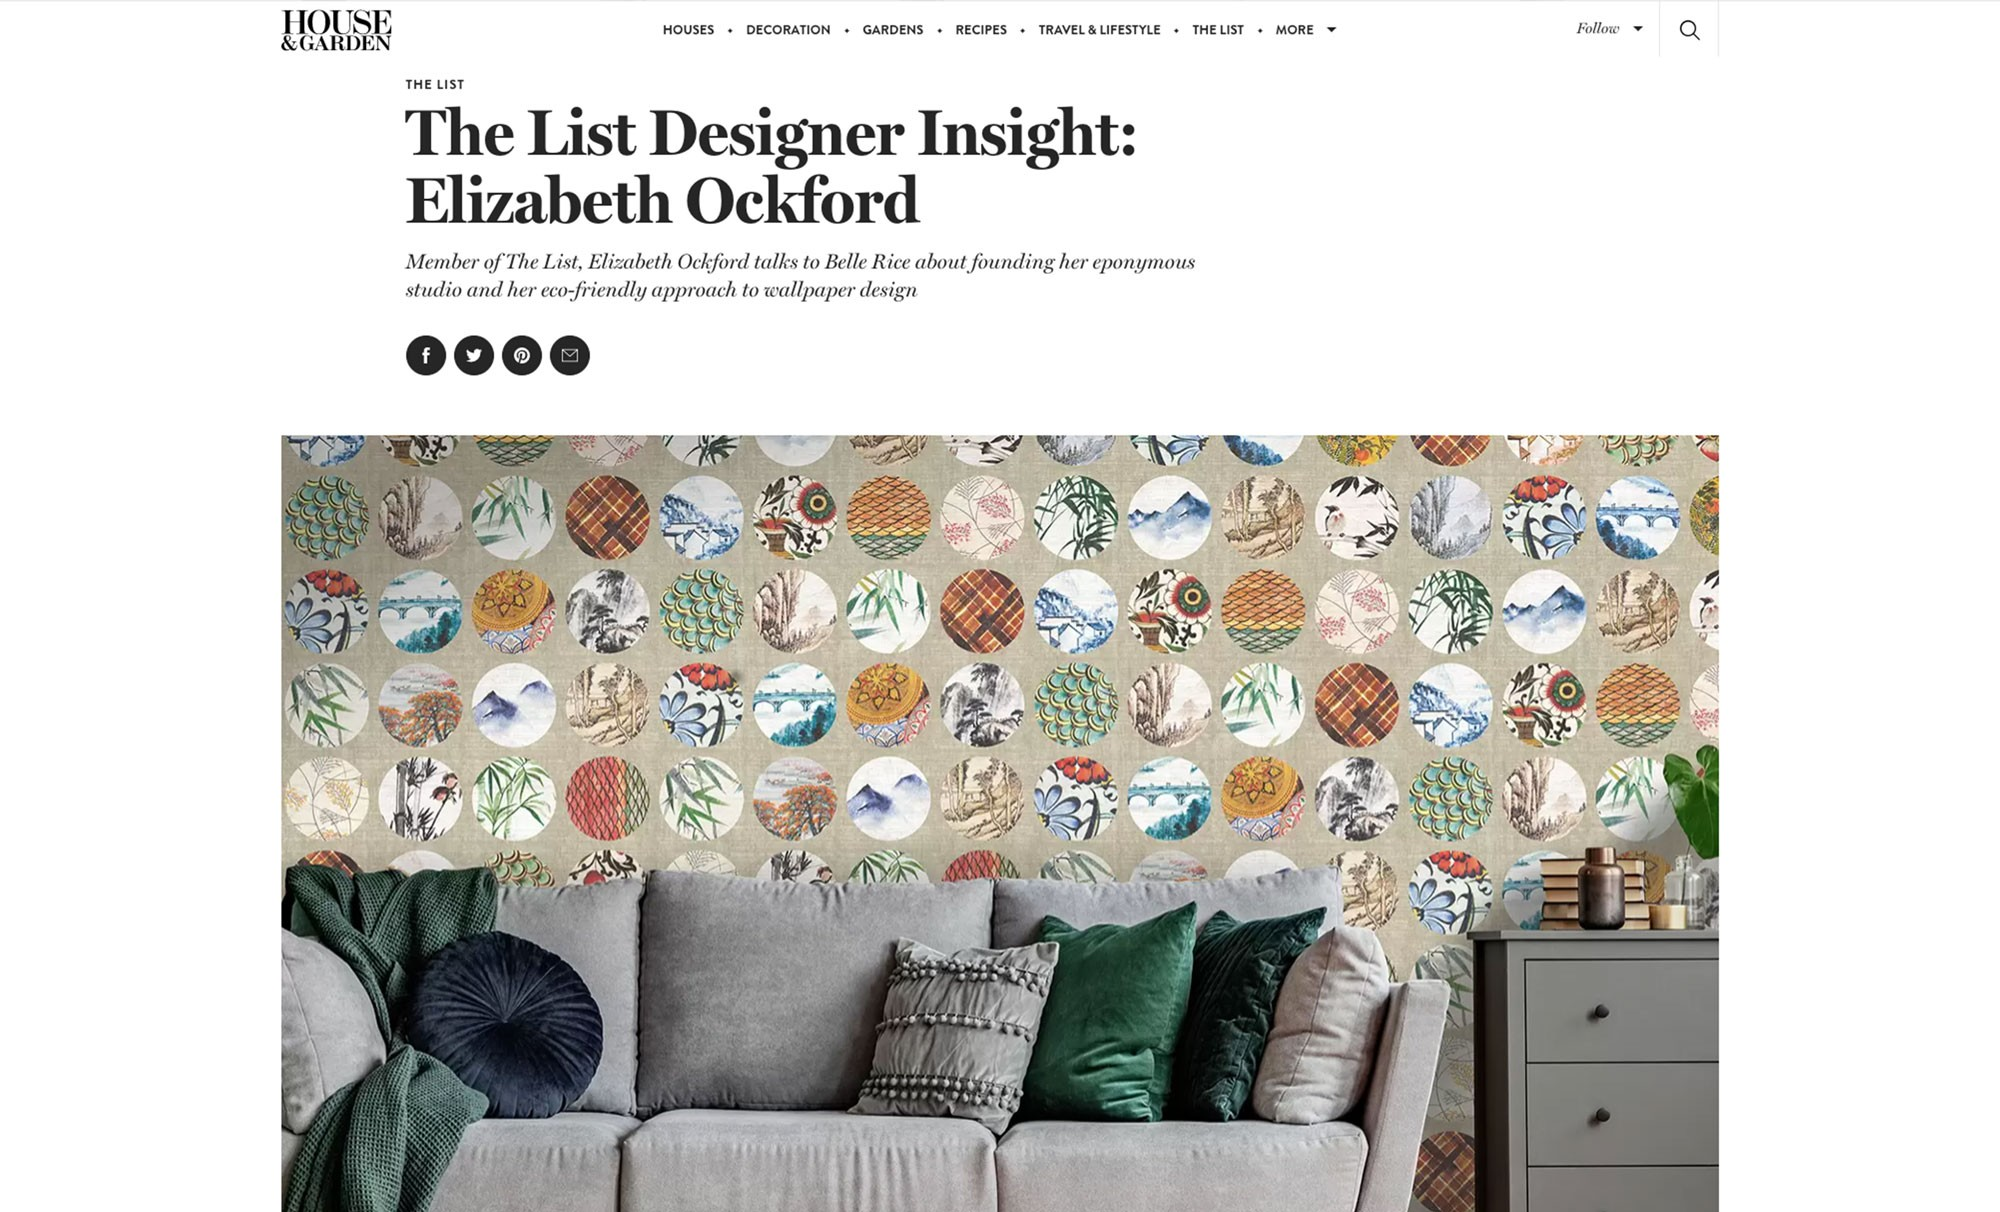 A press release from House and Garden Magazine called The List designer insight: Elizabeth Ockford showing an interview with Elizabeth with an image of the pearl river design wallpaper